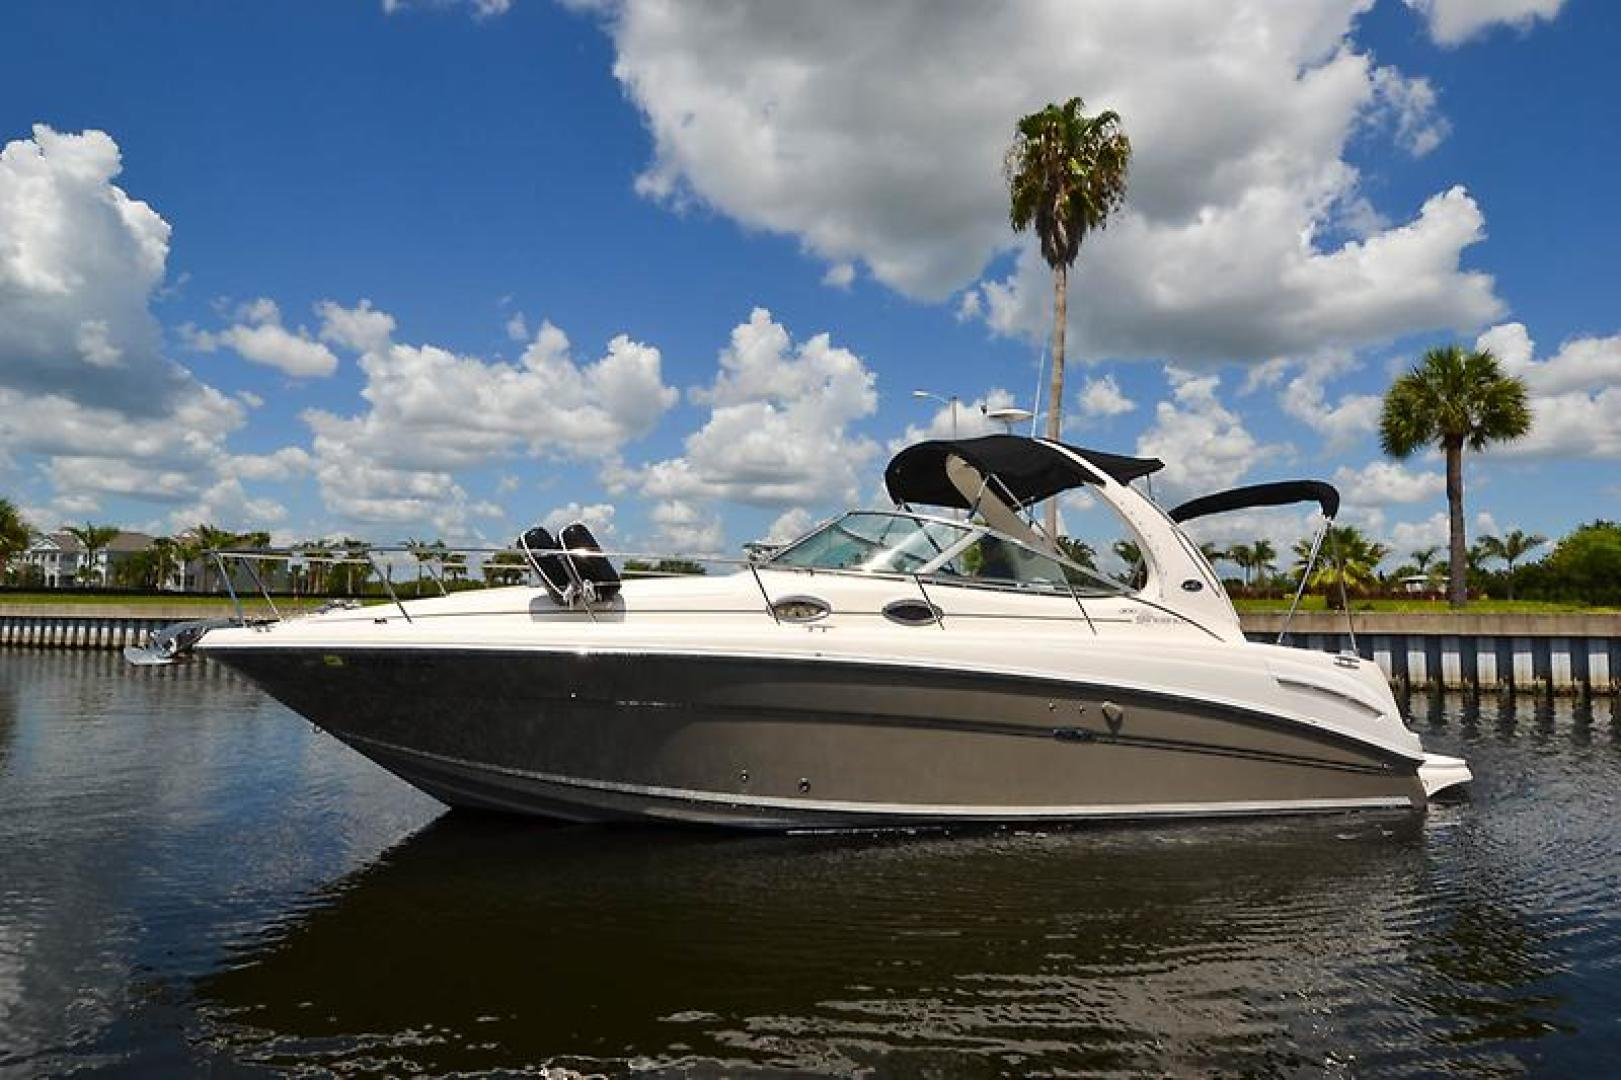 2006 Sea Ray 300 Sundancer-20-2.jpg